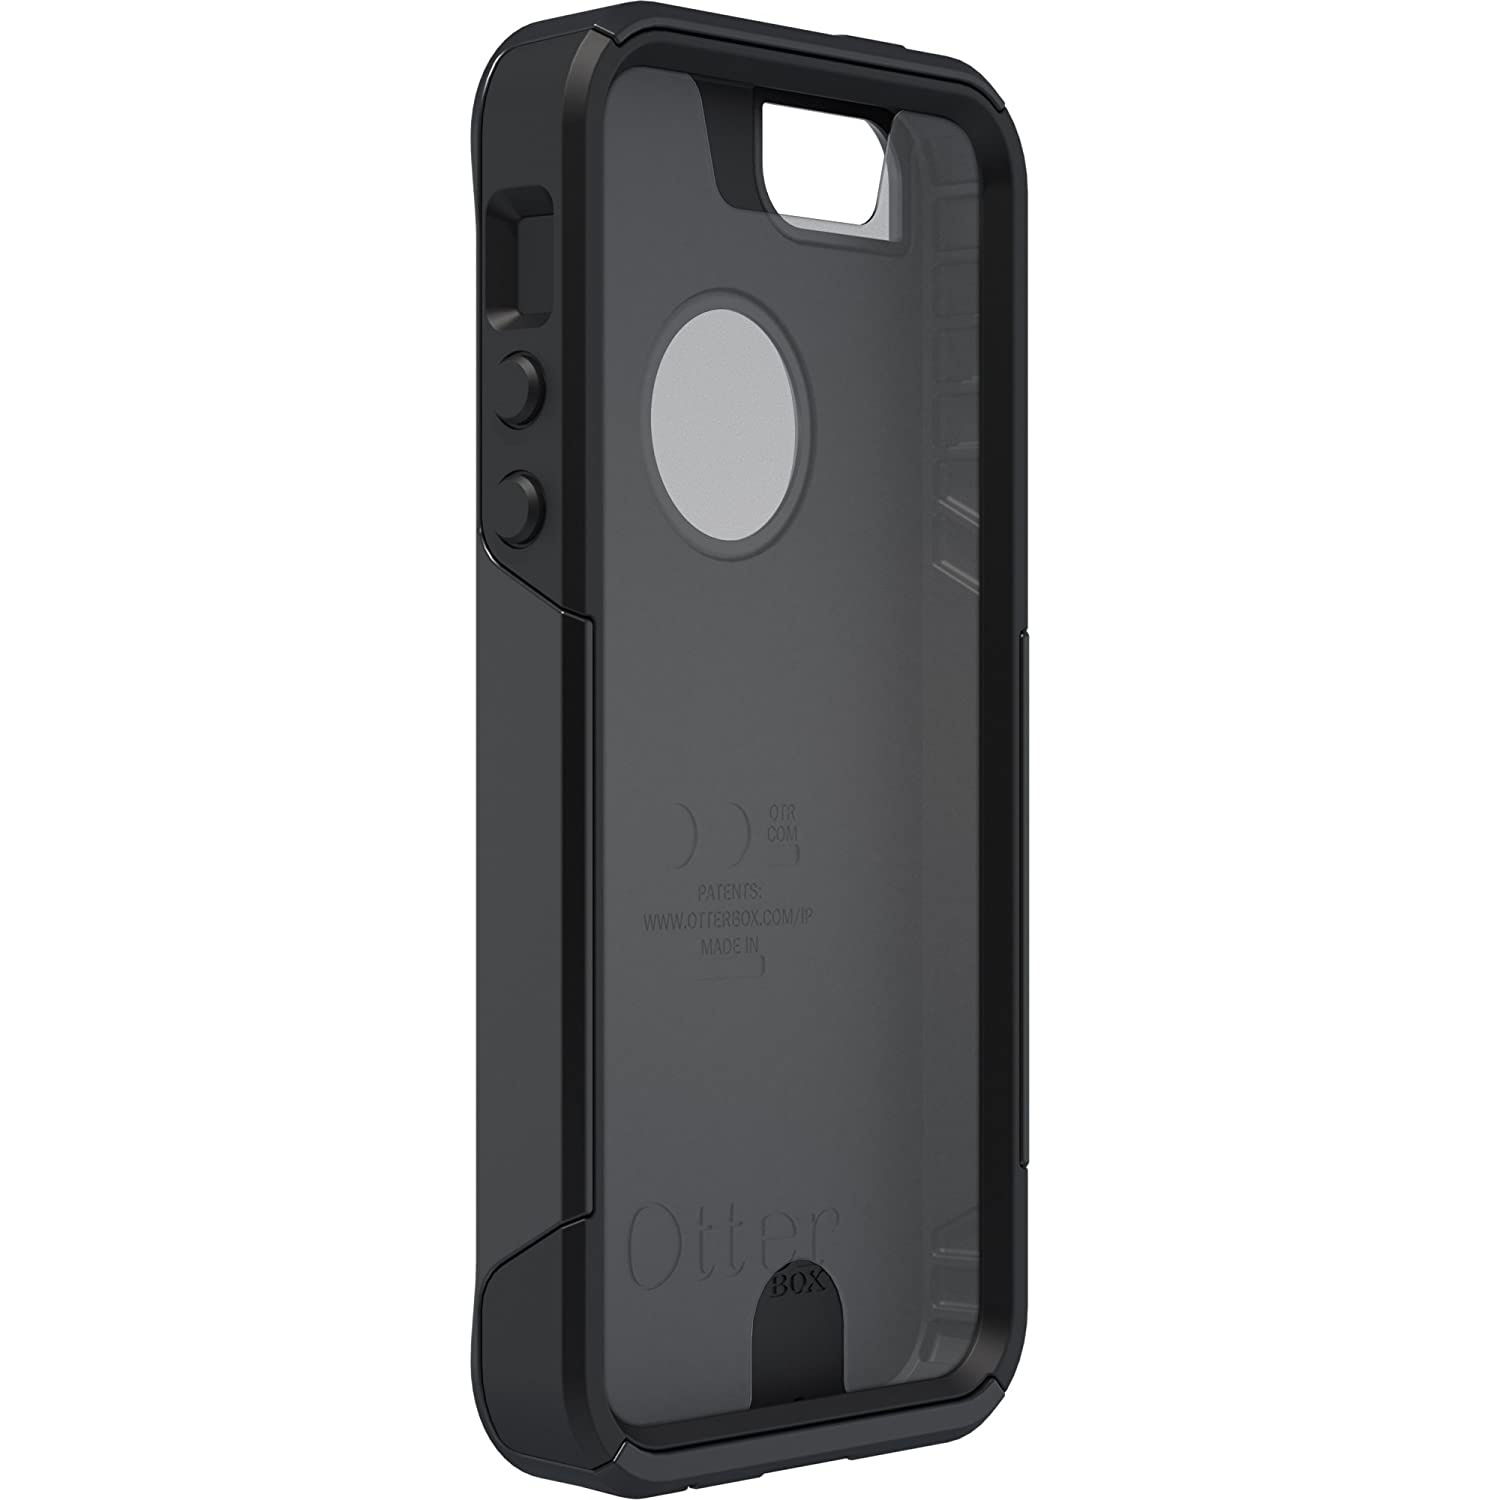 amazon otterbox iphone 5 s coolest iphone 5 best new black otterbox 2122